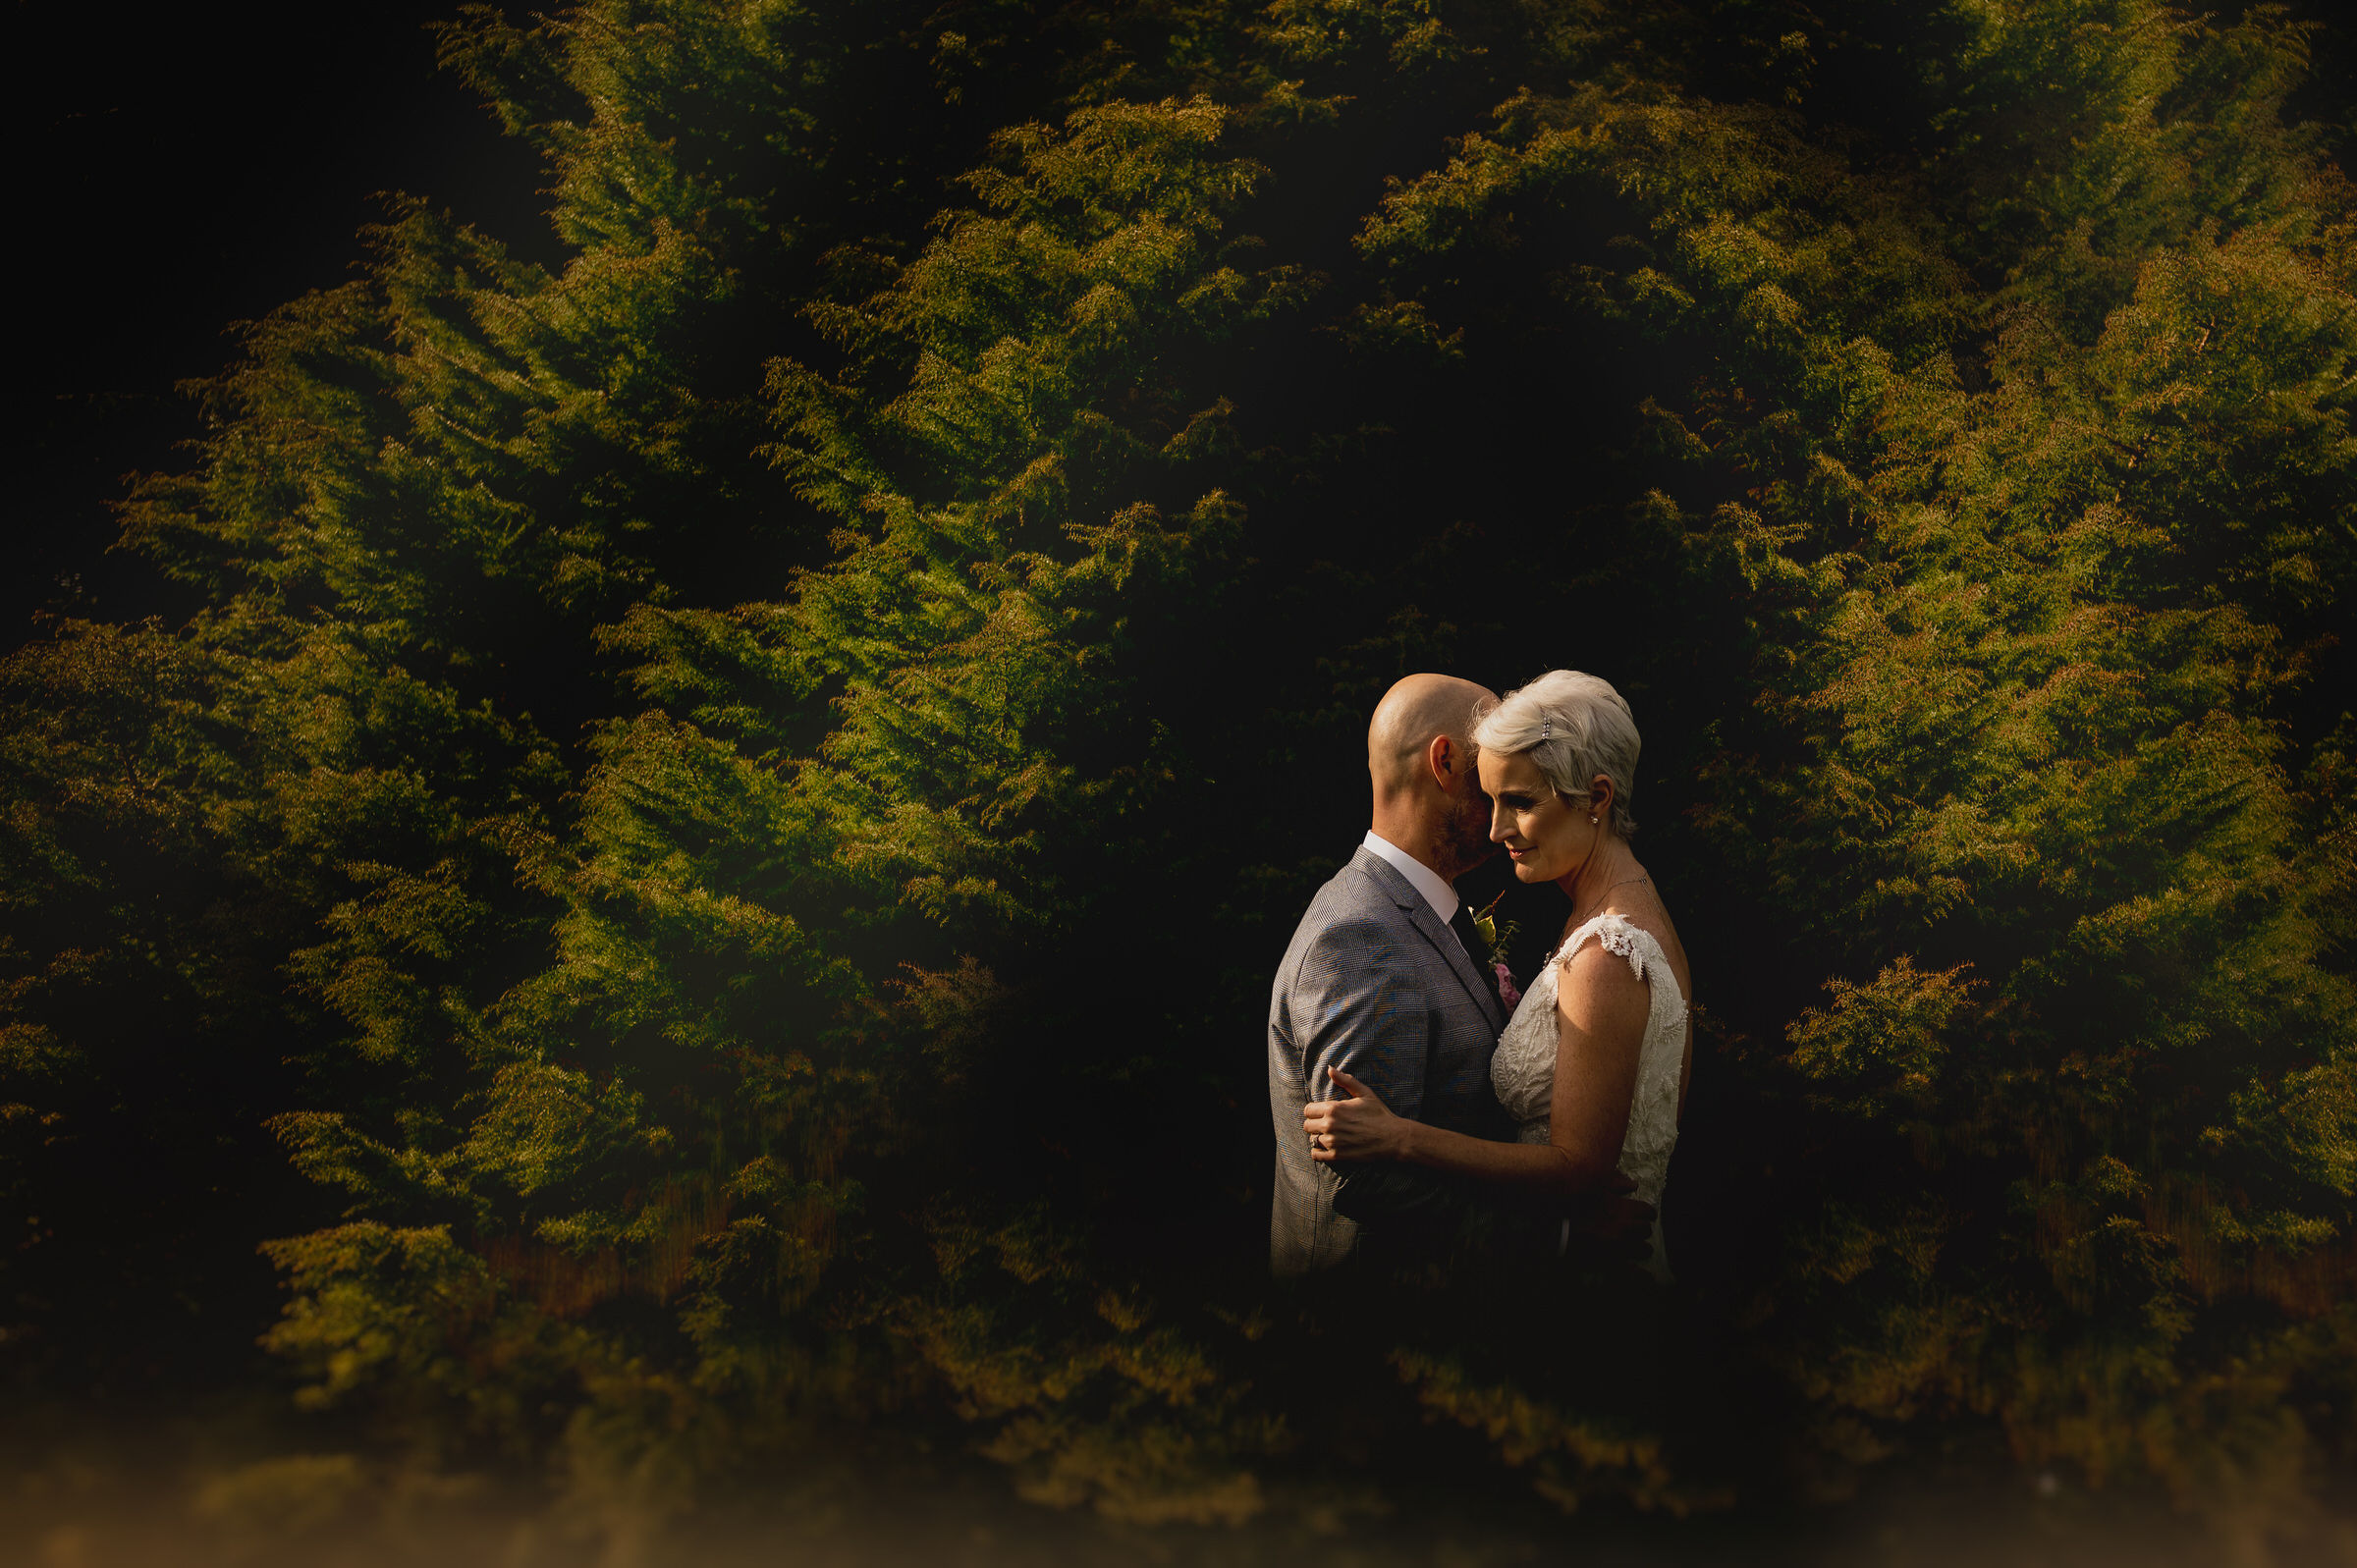 Couple framed in shrubbery - photo by John Gillooley